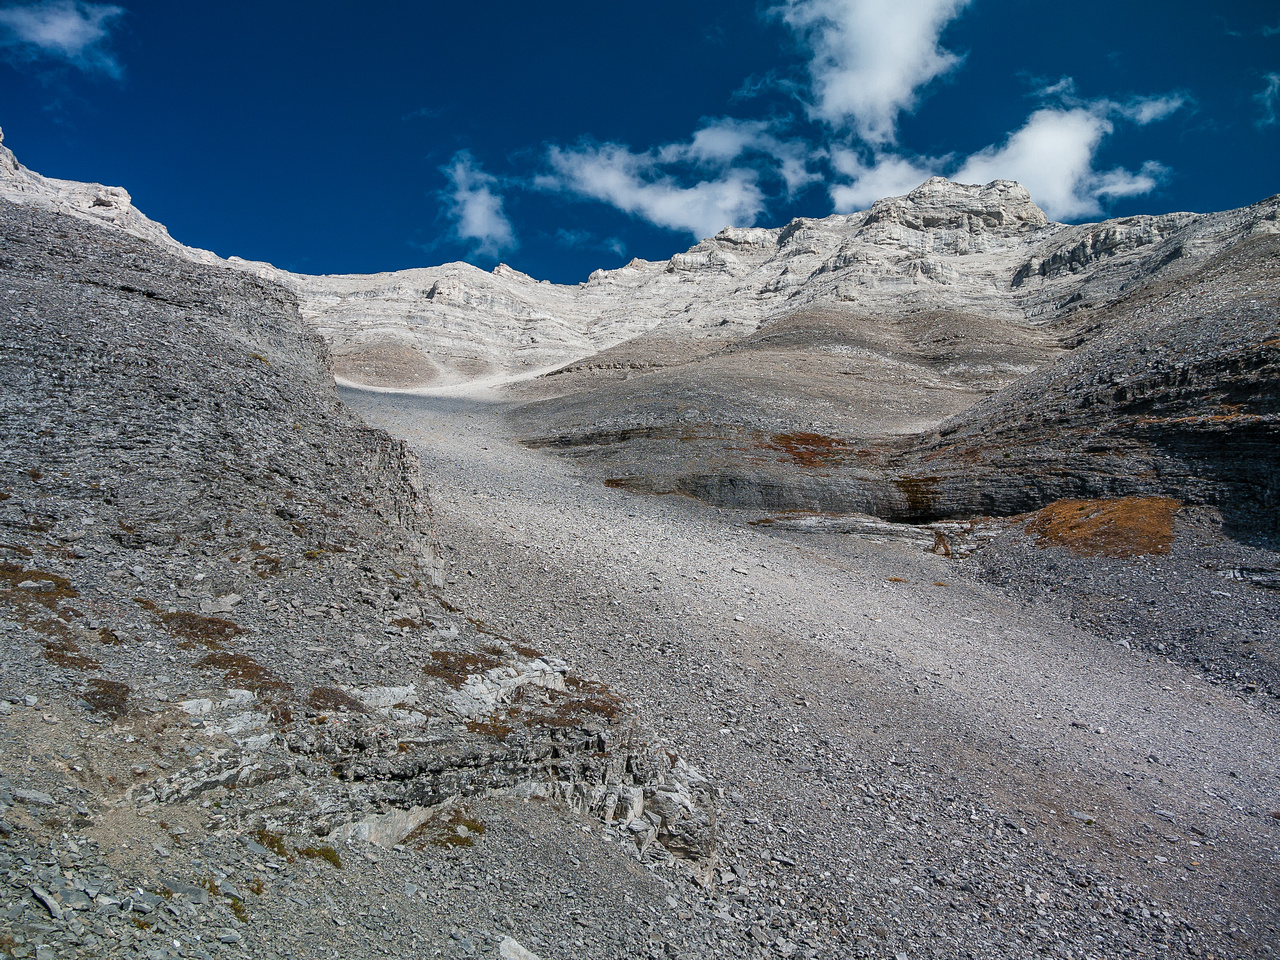 Harvey is almost done the good scree surfing. I'm waiting for him out of the wind, eating my lunch in the warm sunshine.